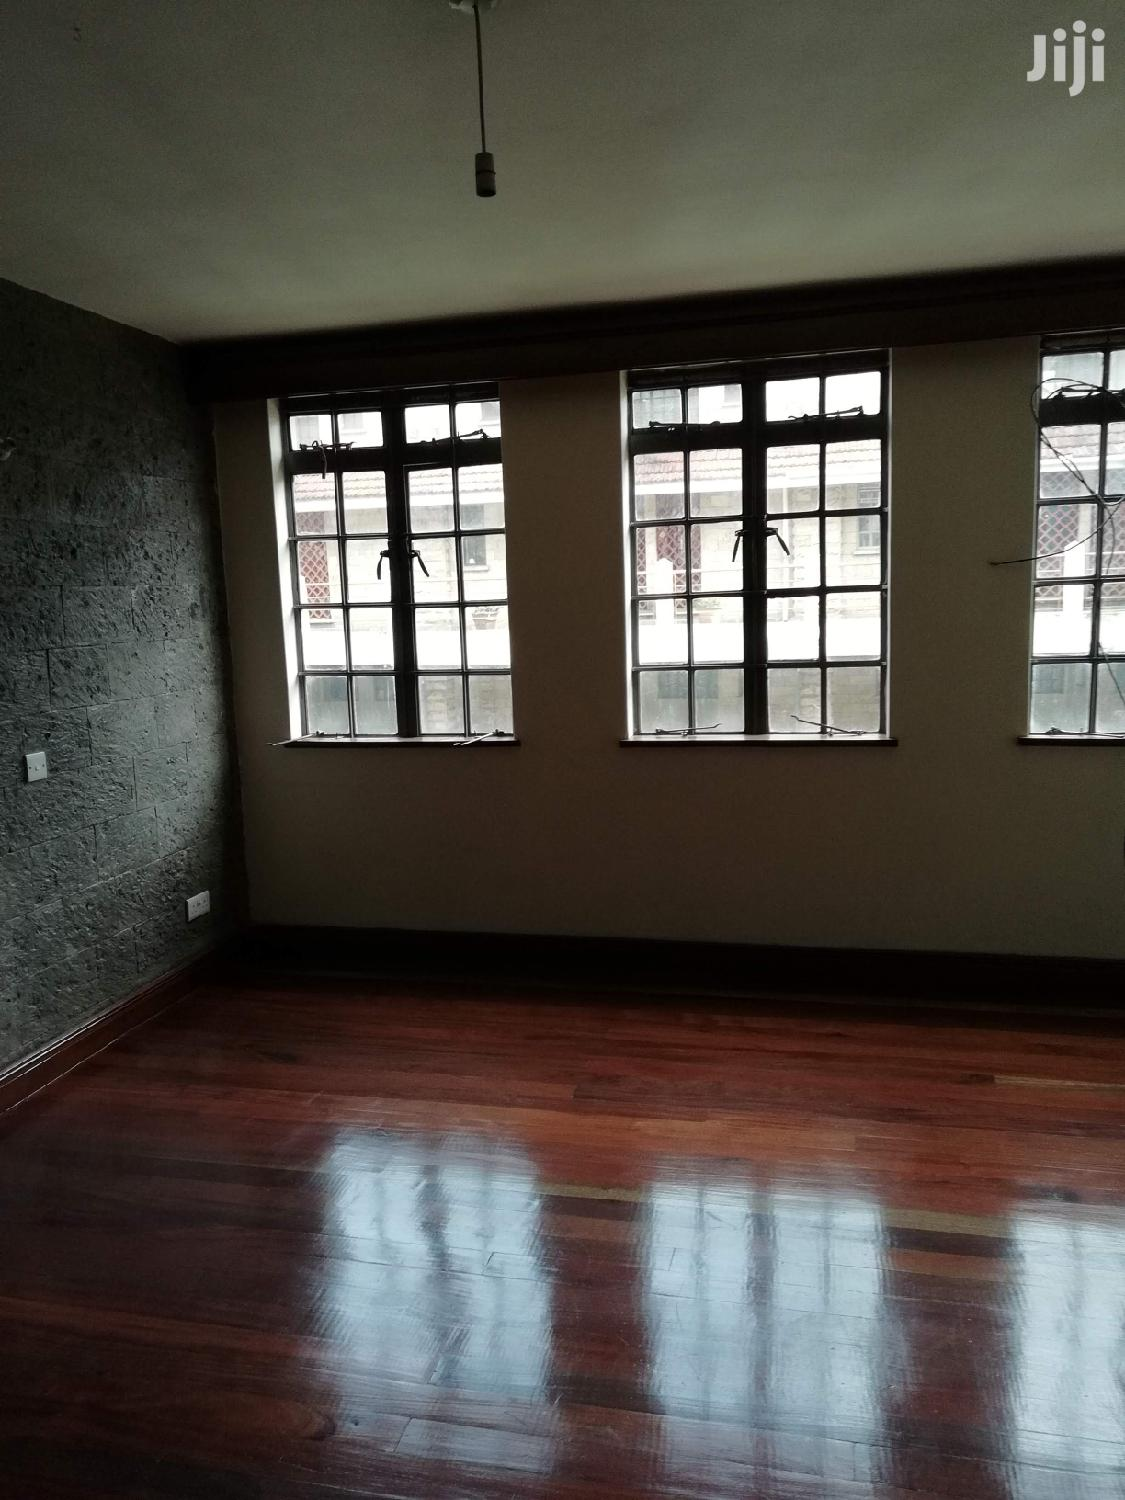 Property World,3/4brs Duplex With Pool,Gym and Very Secure | Houses & Apartments For Rent for sale in Lavington, Nairobi, Kenya